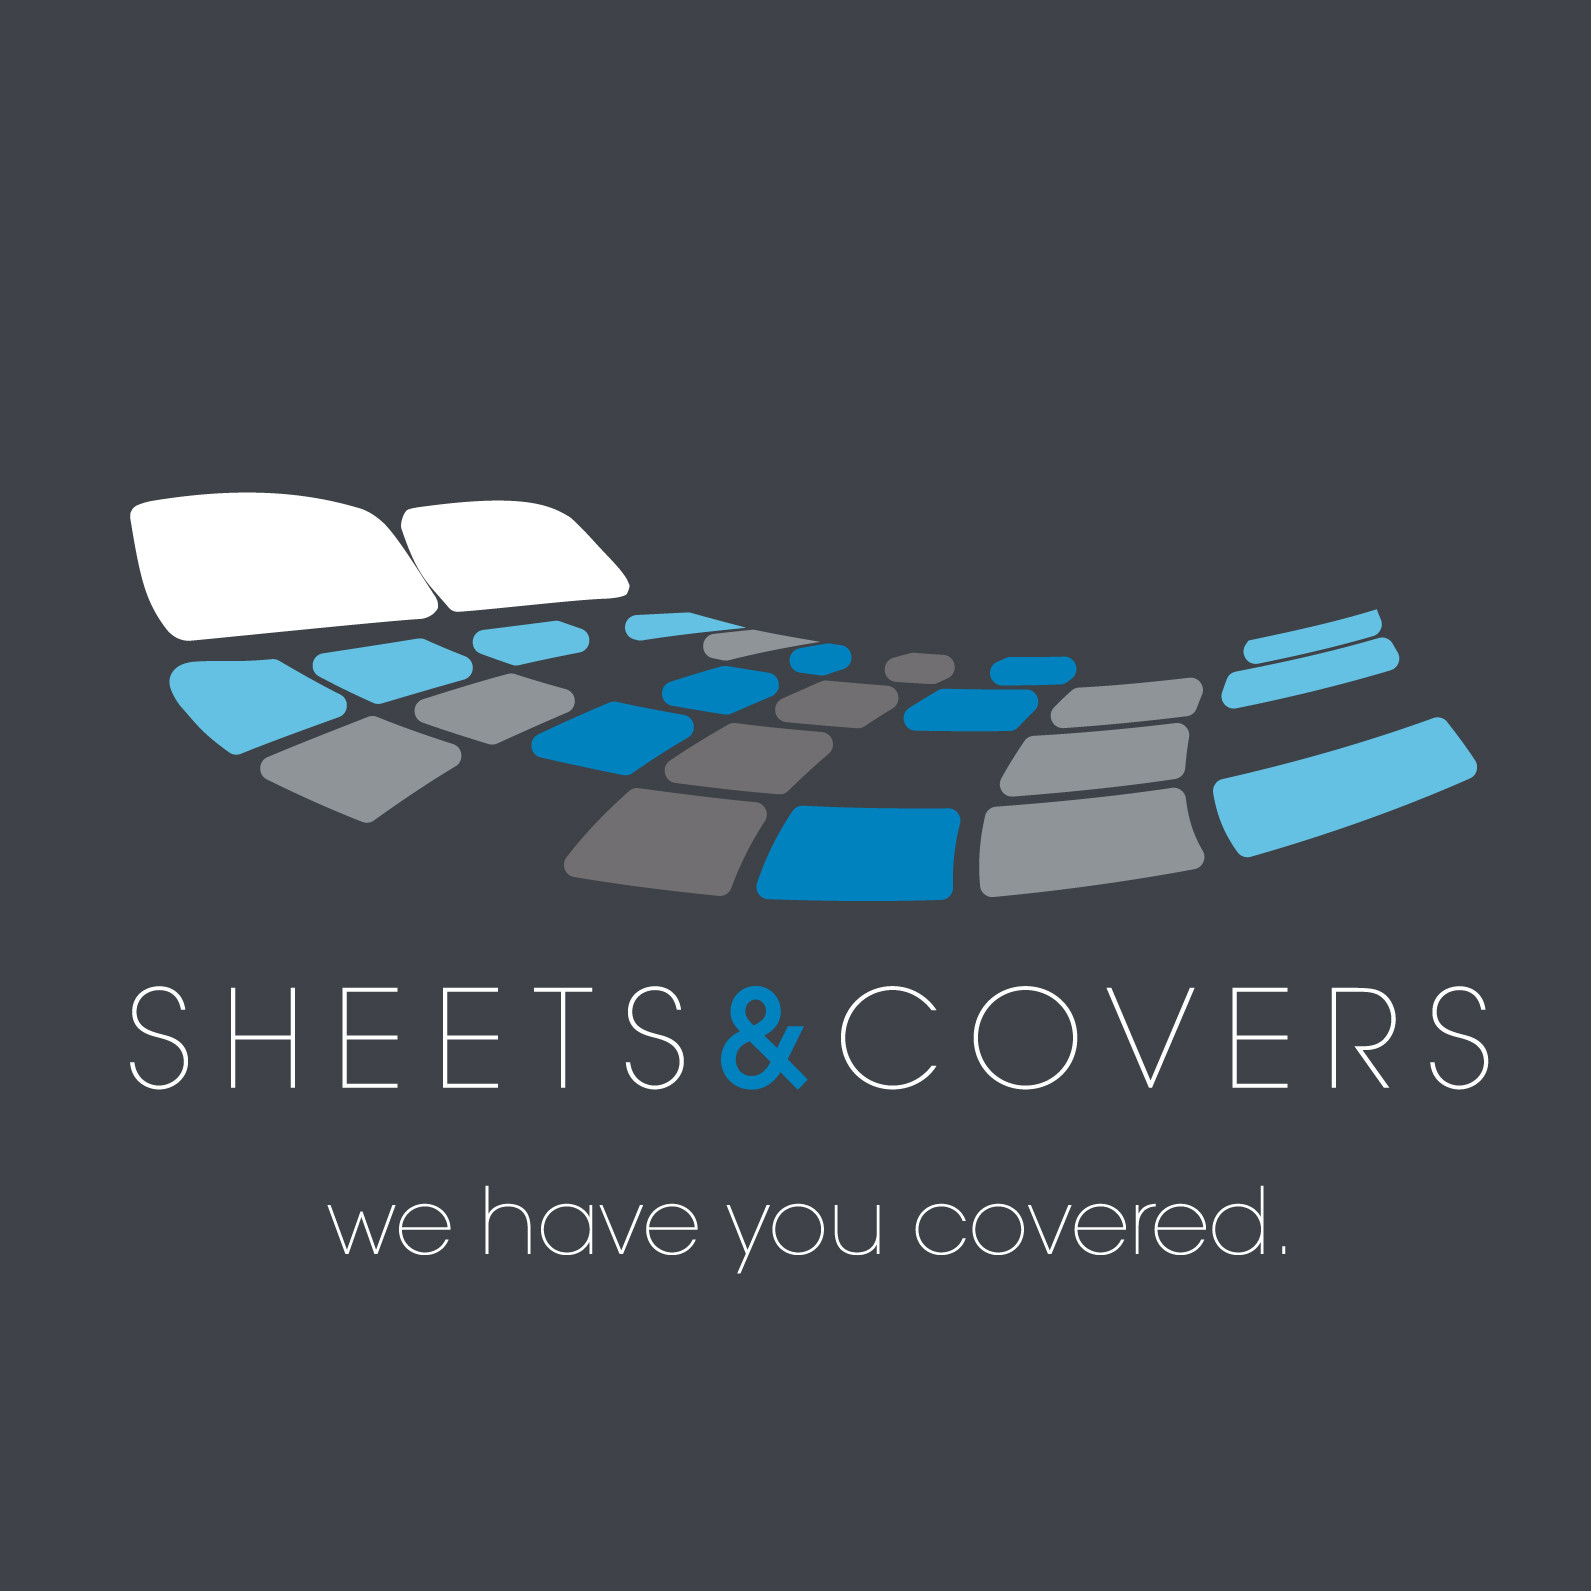 Bedding and Manchester Logo Design